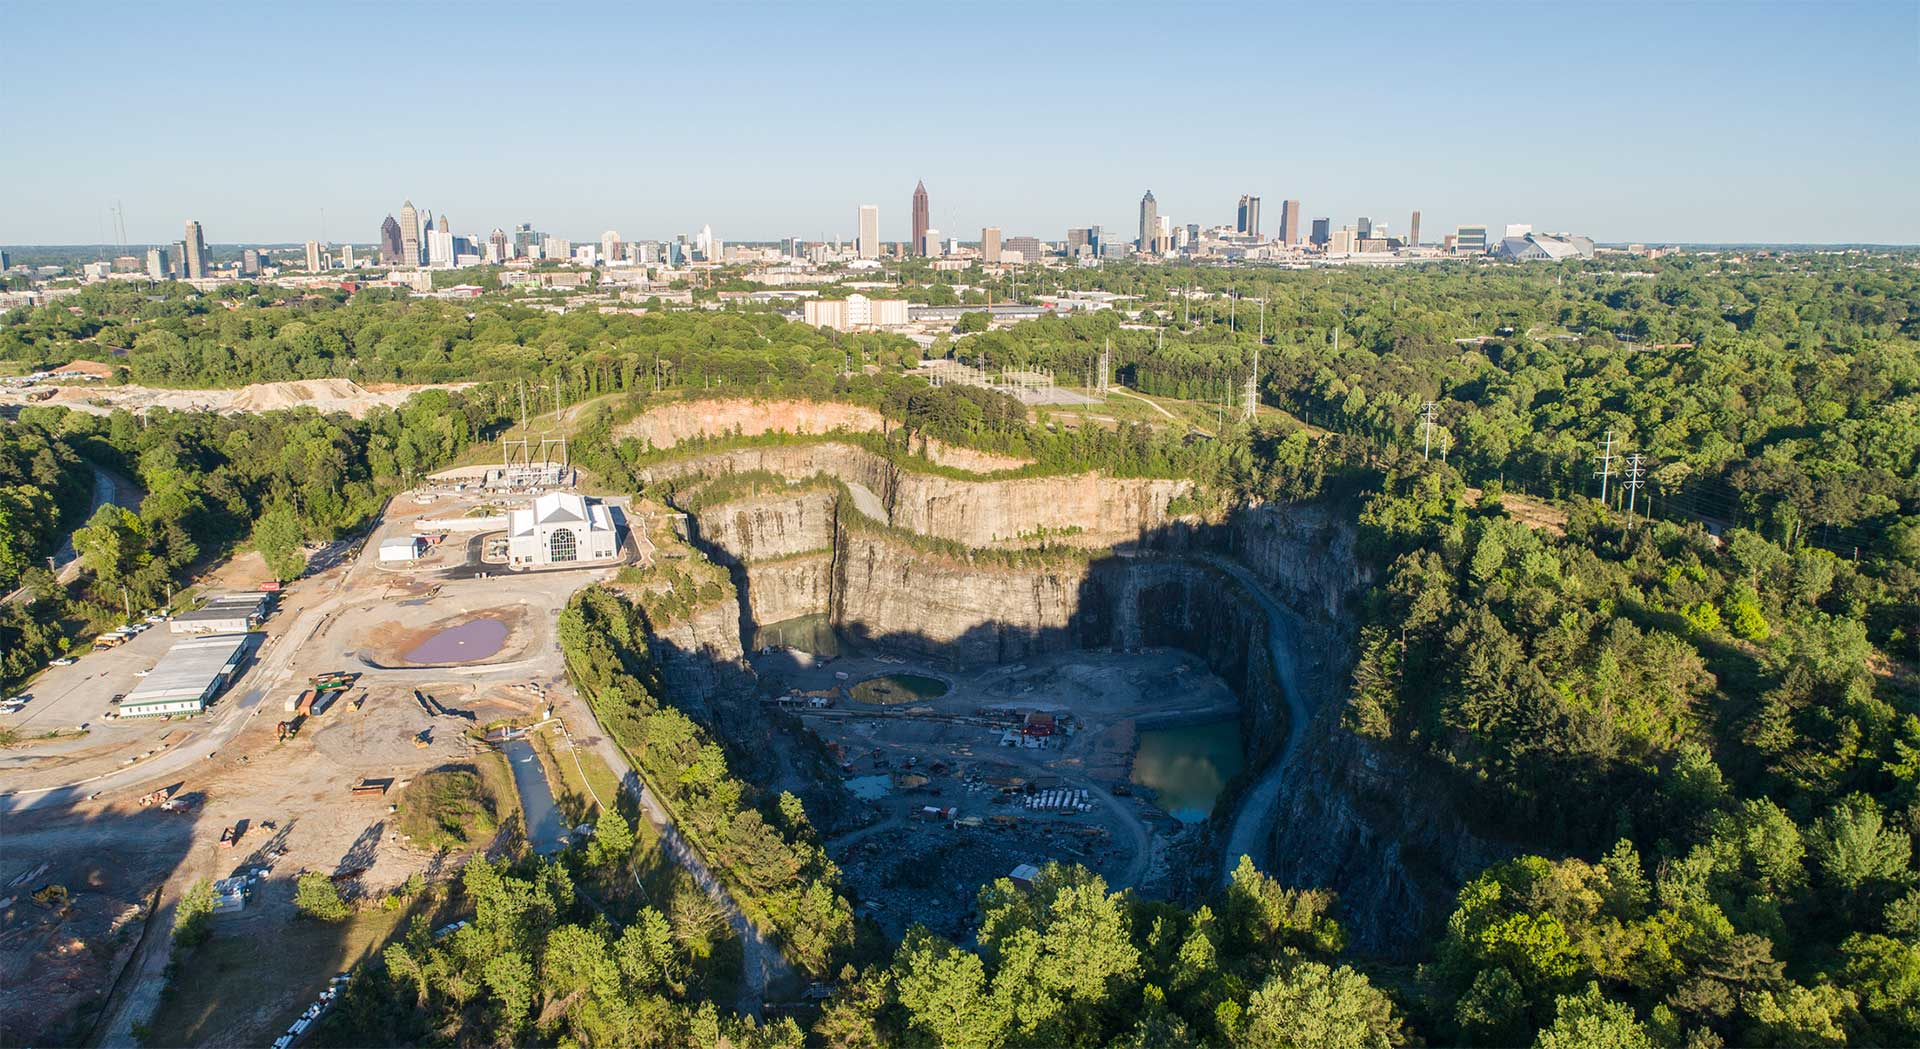 Birdseye view of Atlanta and stone quarry and city skyline.